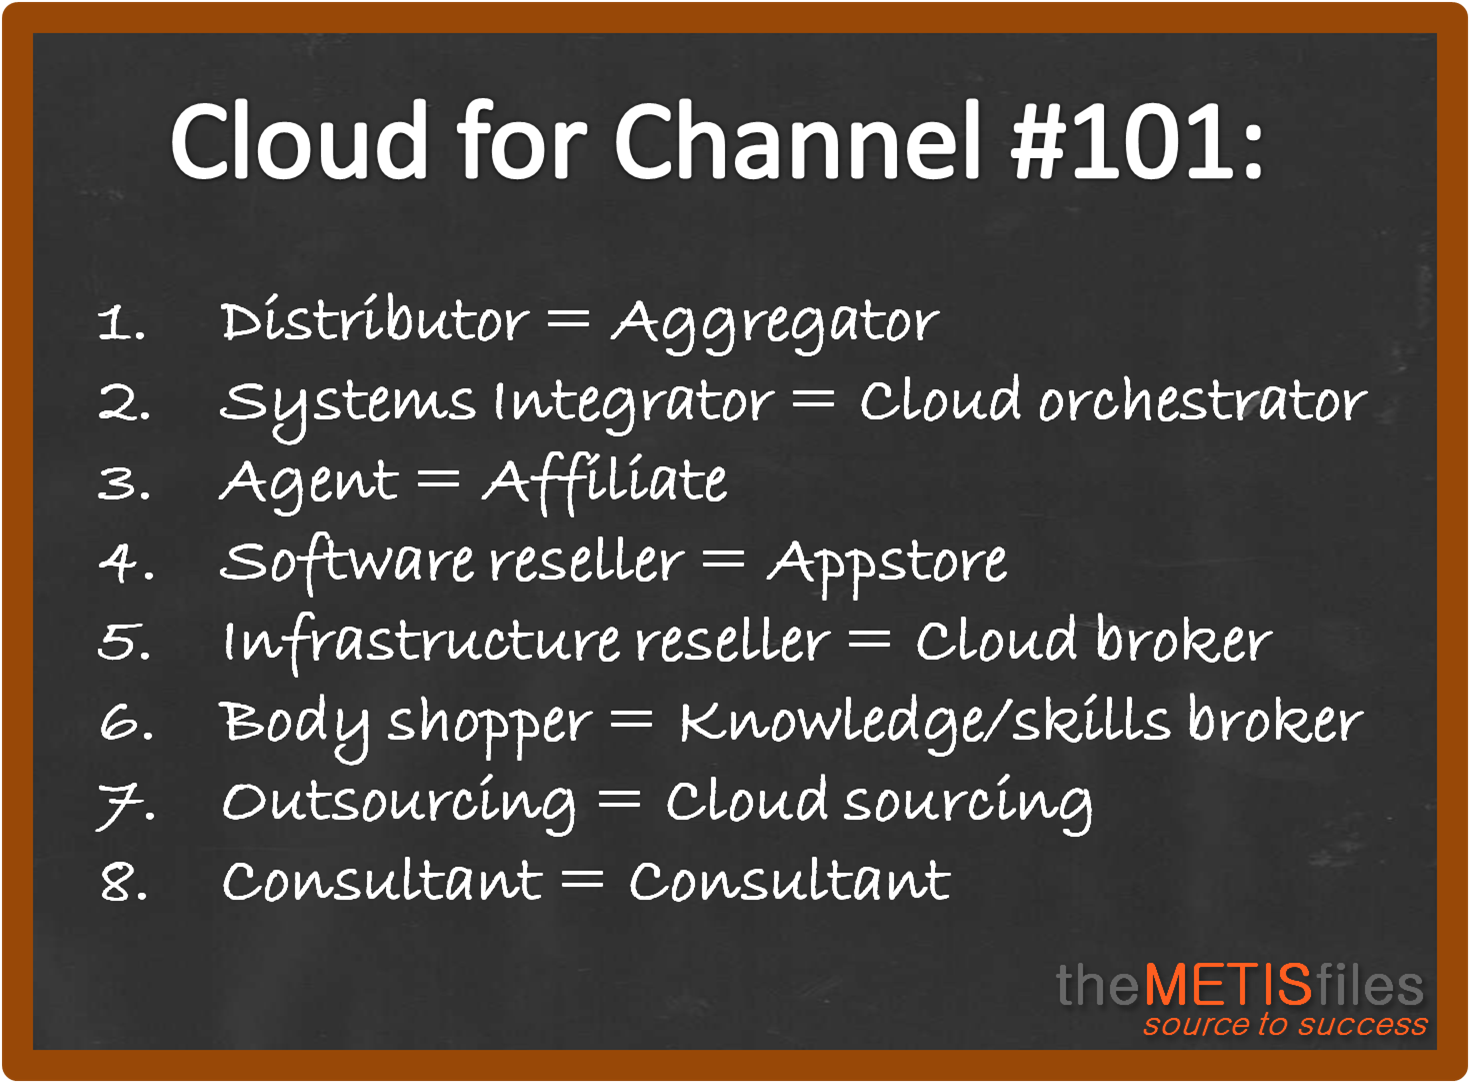 Want To Know More About Cloud For Channel? | The METISfiles